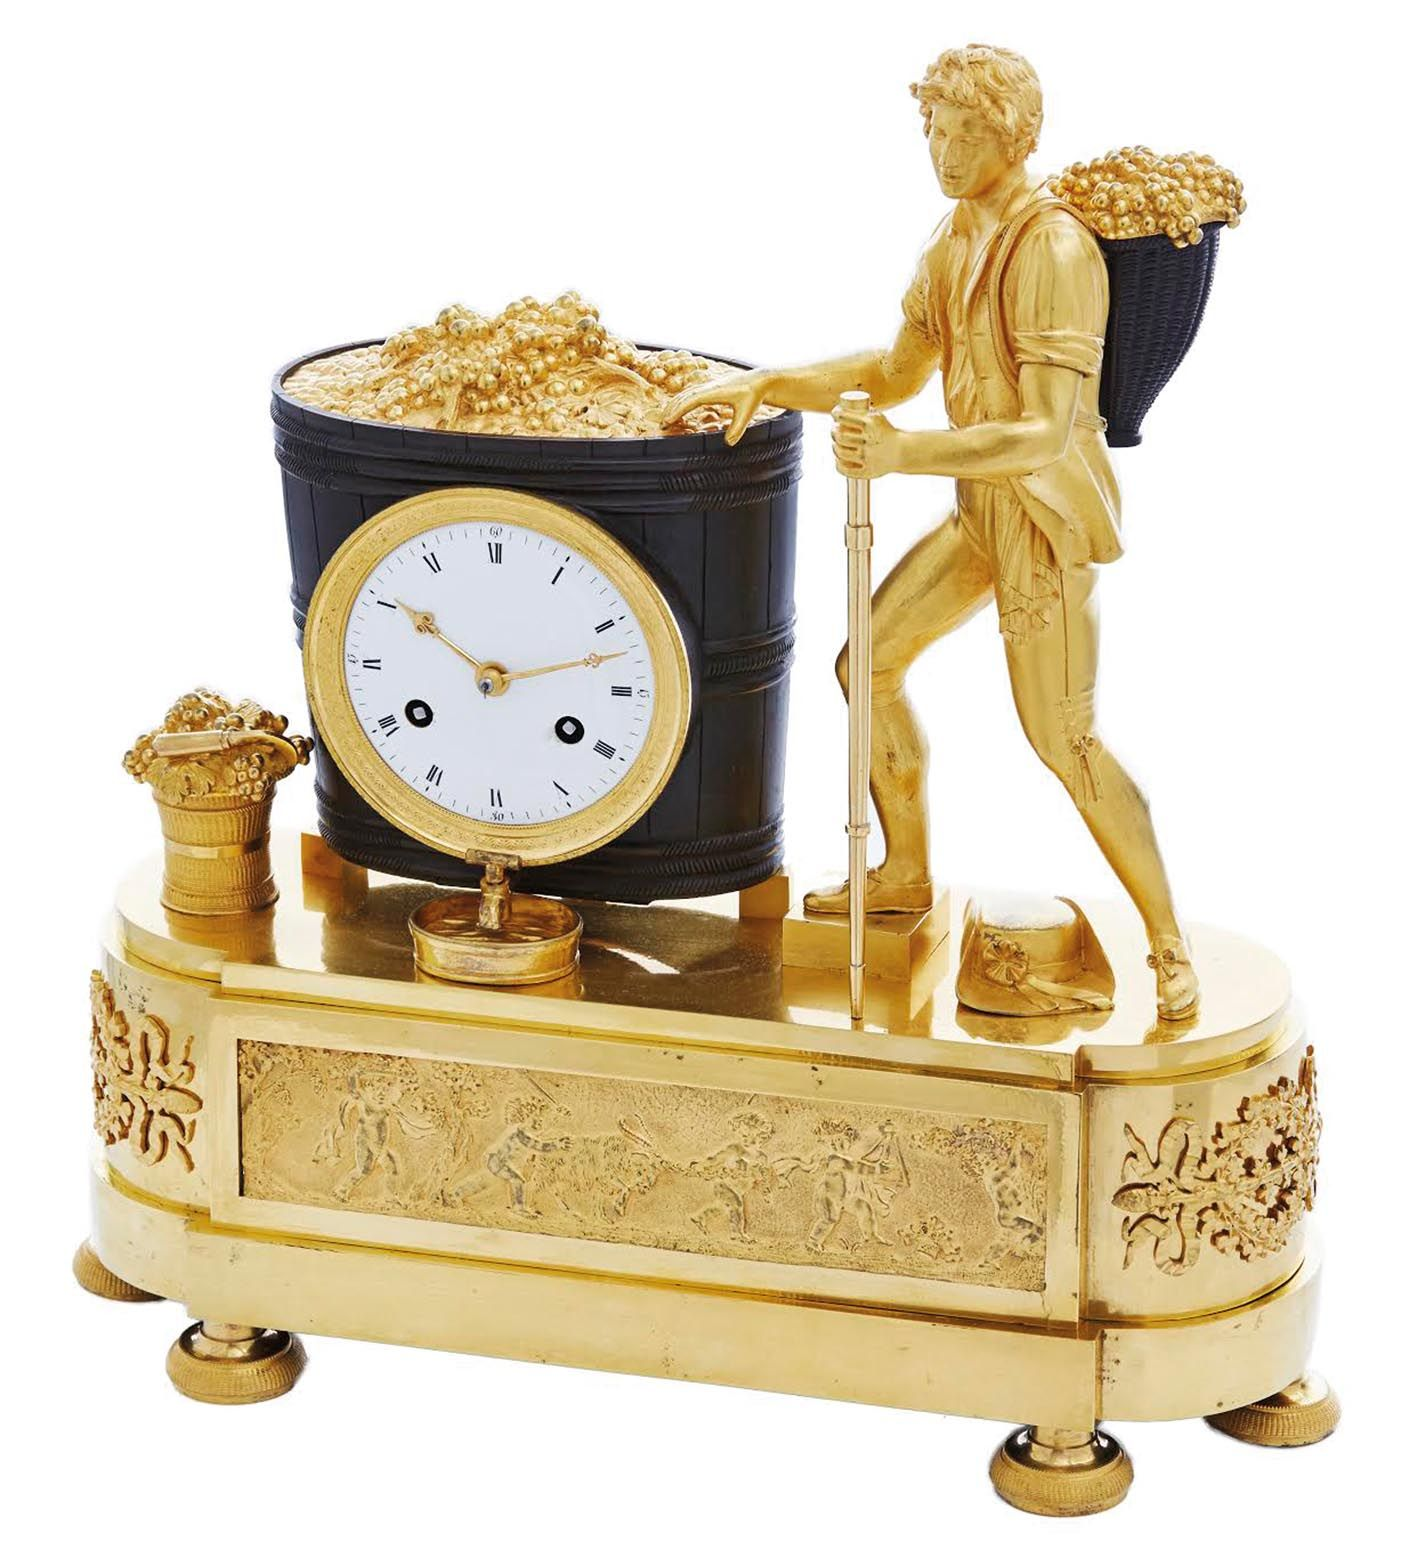 French Empire, circa 1810, bronze and ormolu mantel clock depicting the grape harvest, the movement set in the wine hat.